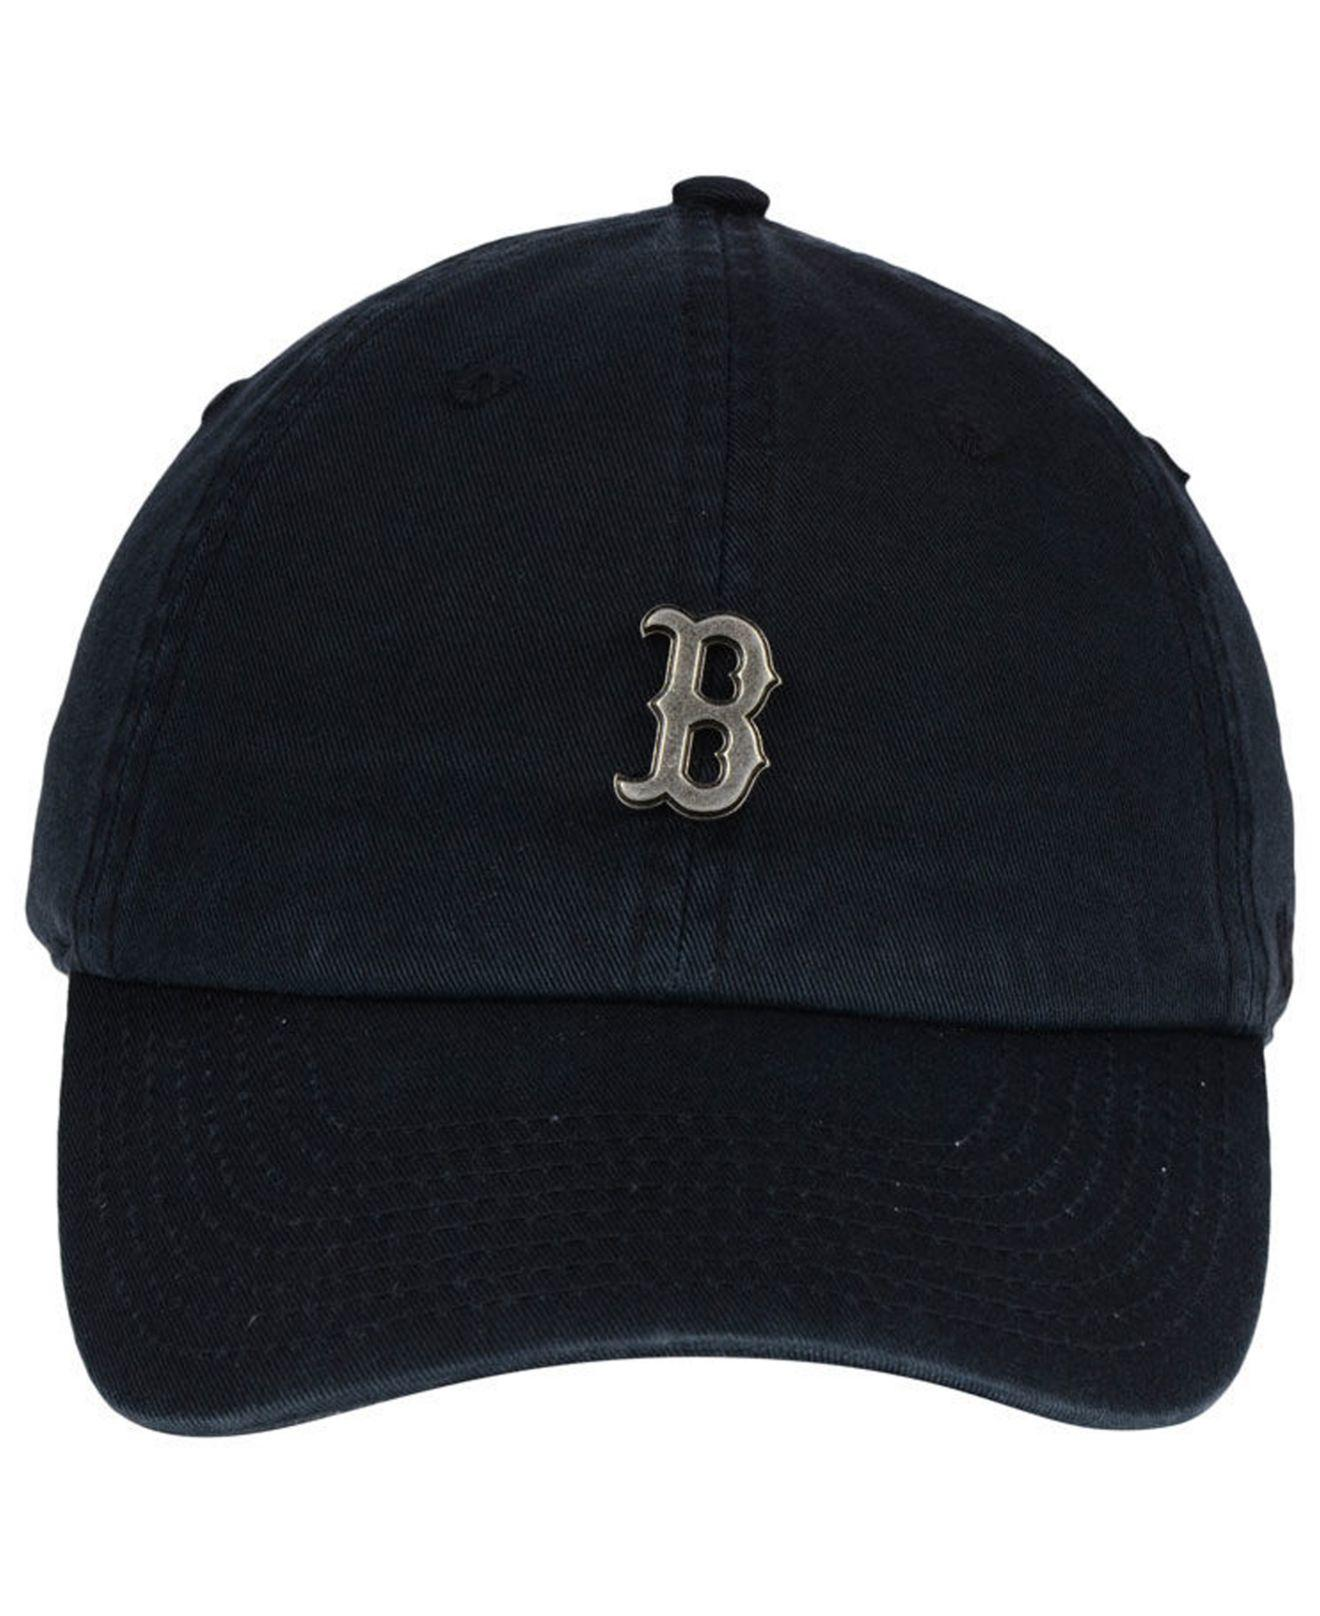 b51db729eba7f Lyst - 47 Brand Boston Red Sox Hardware Clean Up Cap in Black for Men